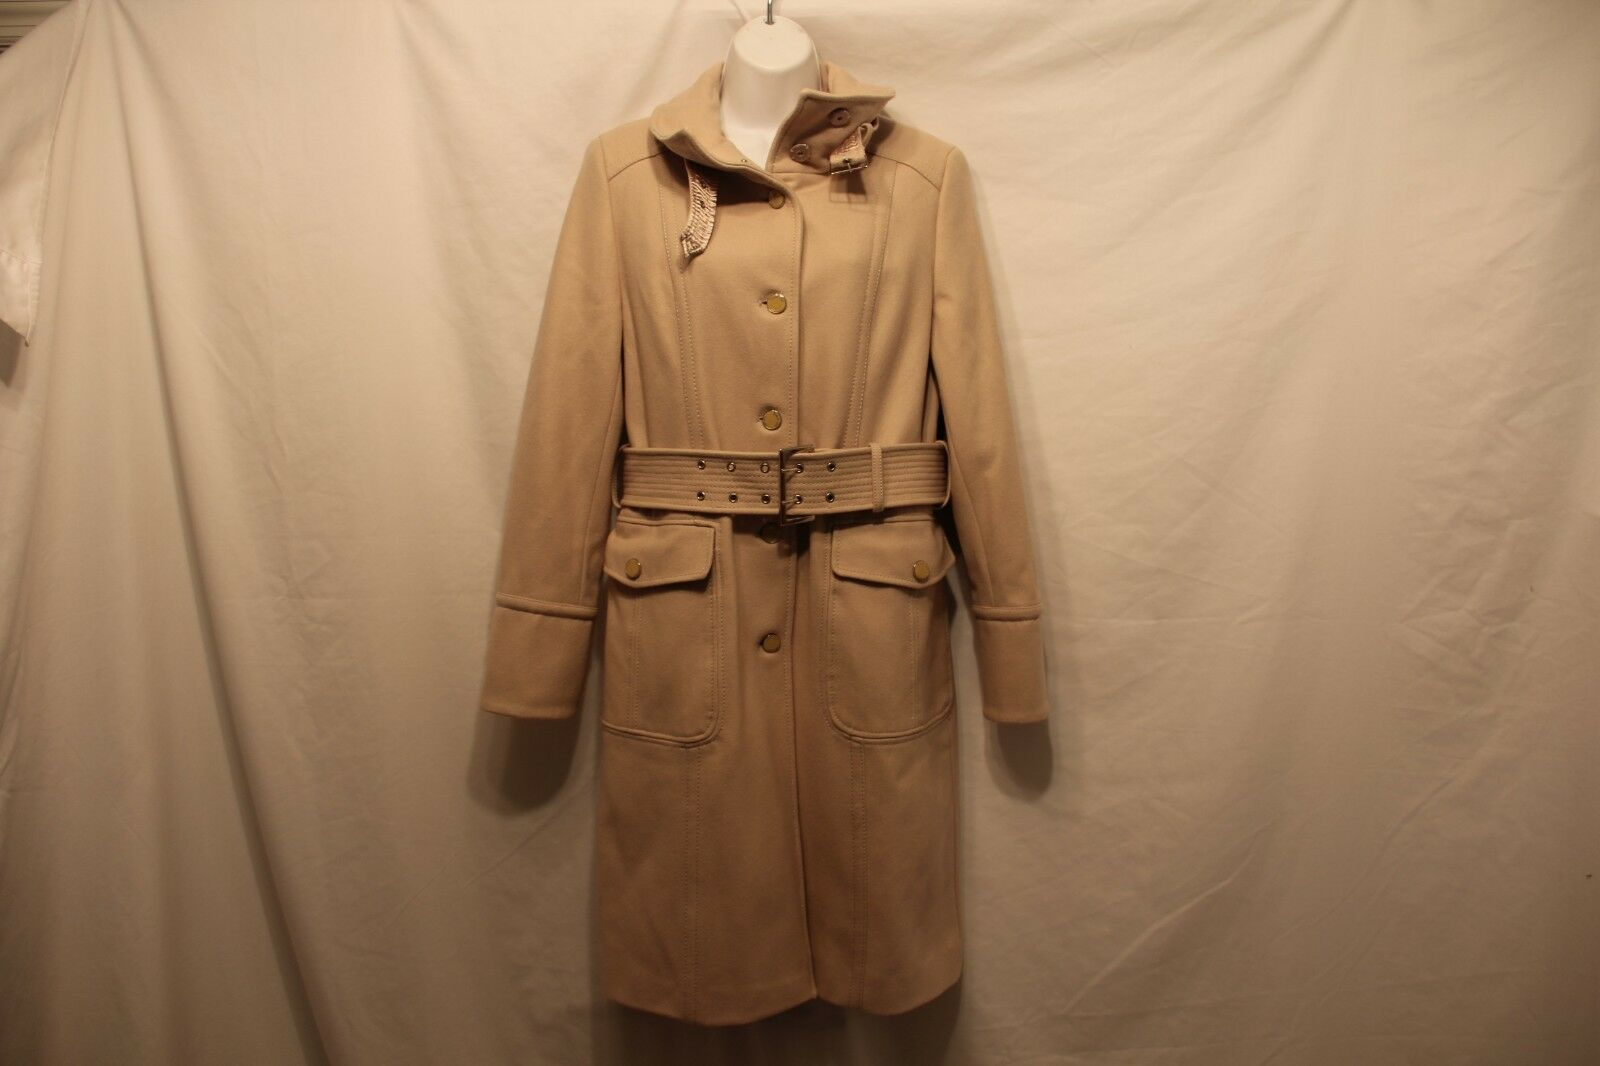 Kenneth Cole New York Wool Blend Belted Coat in Beige Women's US Size 6